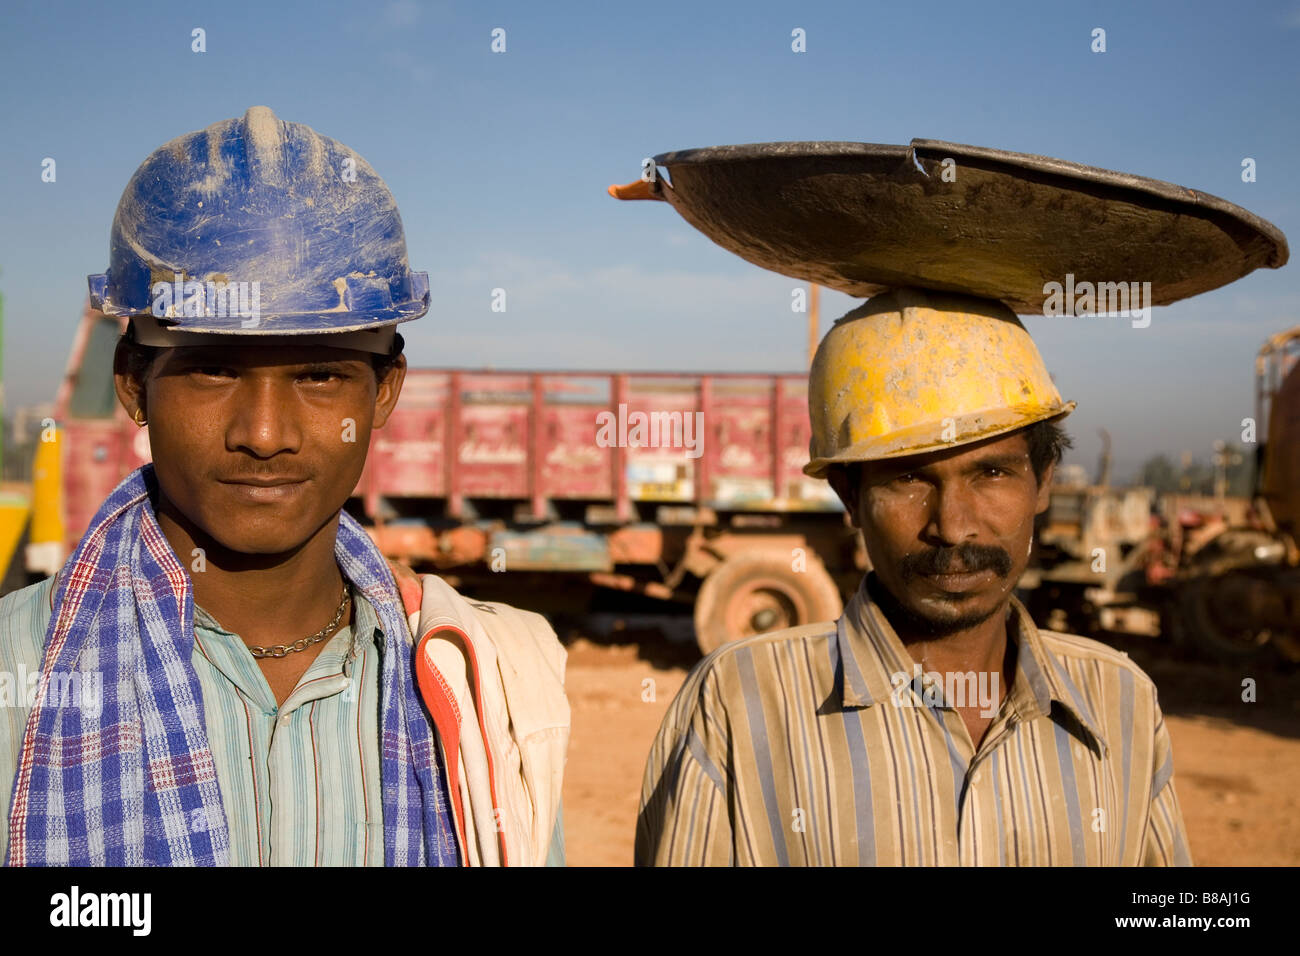 Construction do what workers wear to work best photo